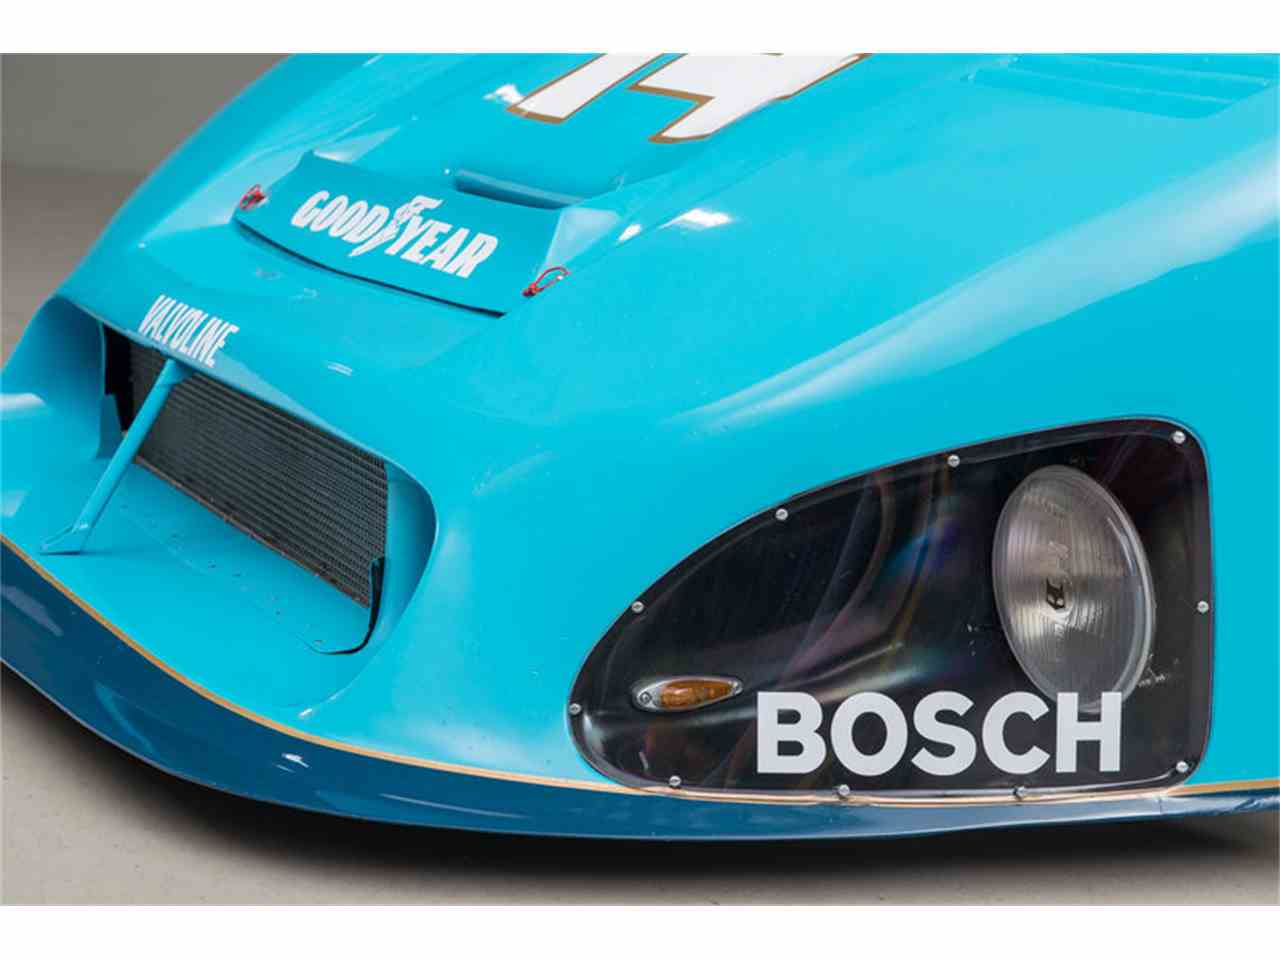 Large Picture of '81 Porsche 935 K4 located in Scotts Valley California Auction Vehicle - GQ9Y